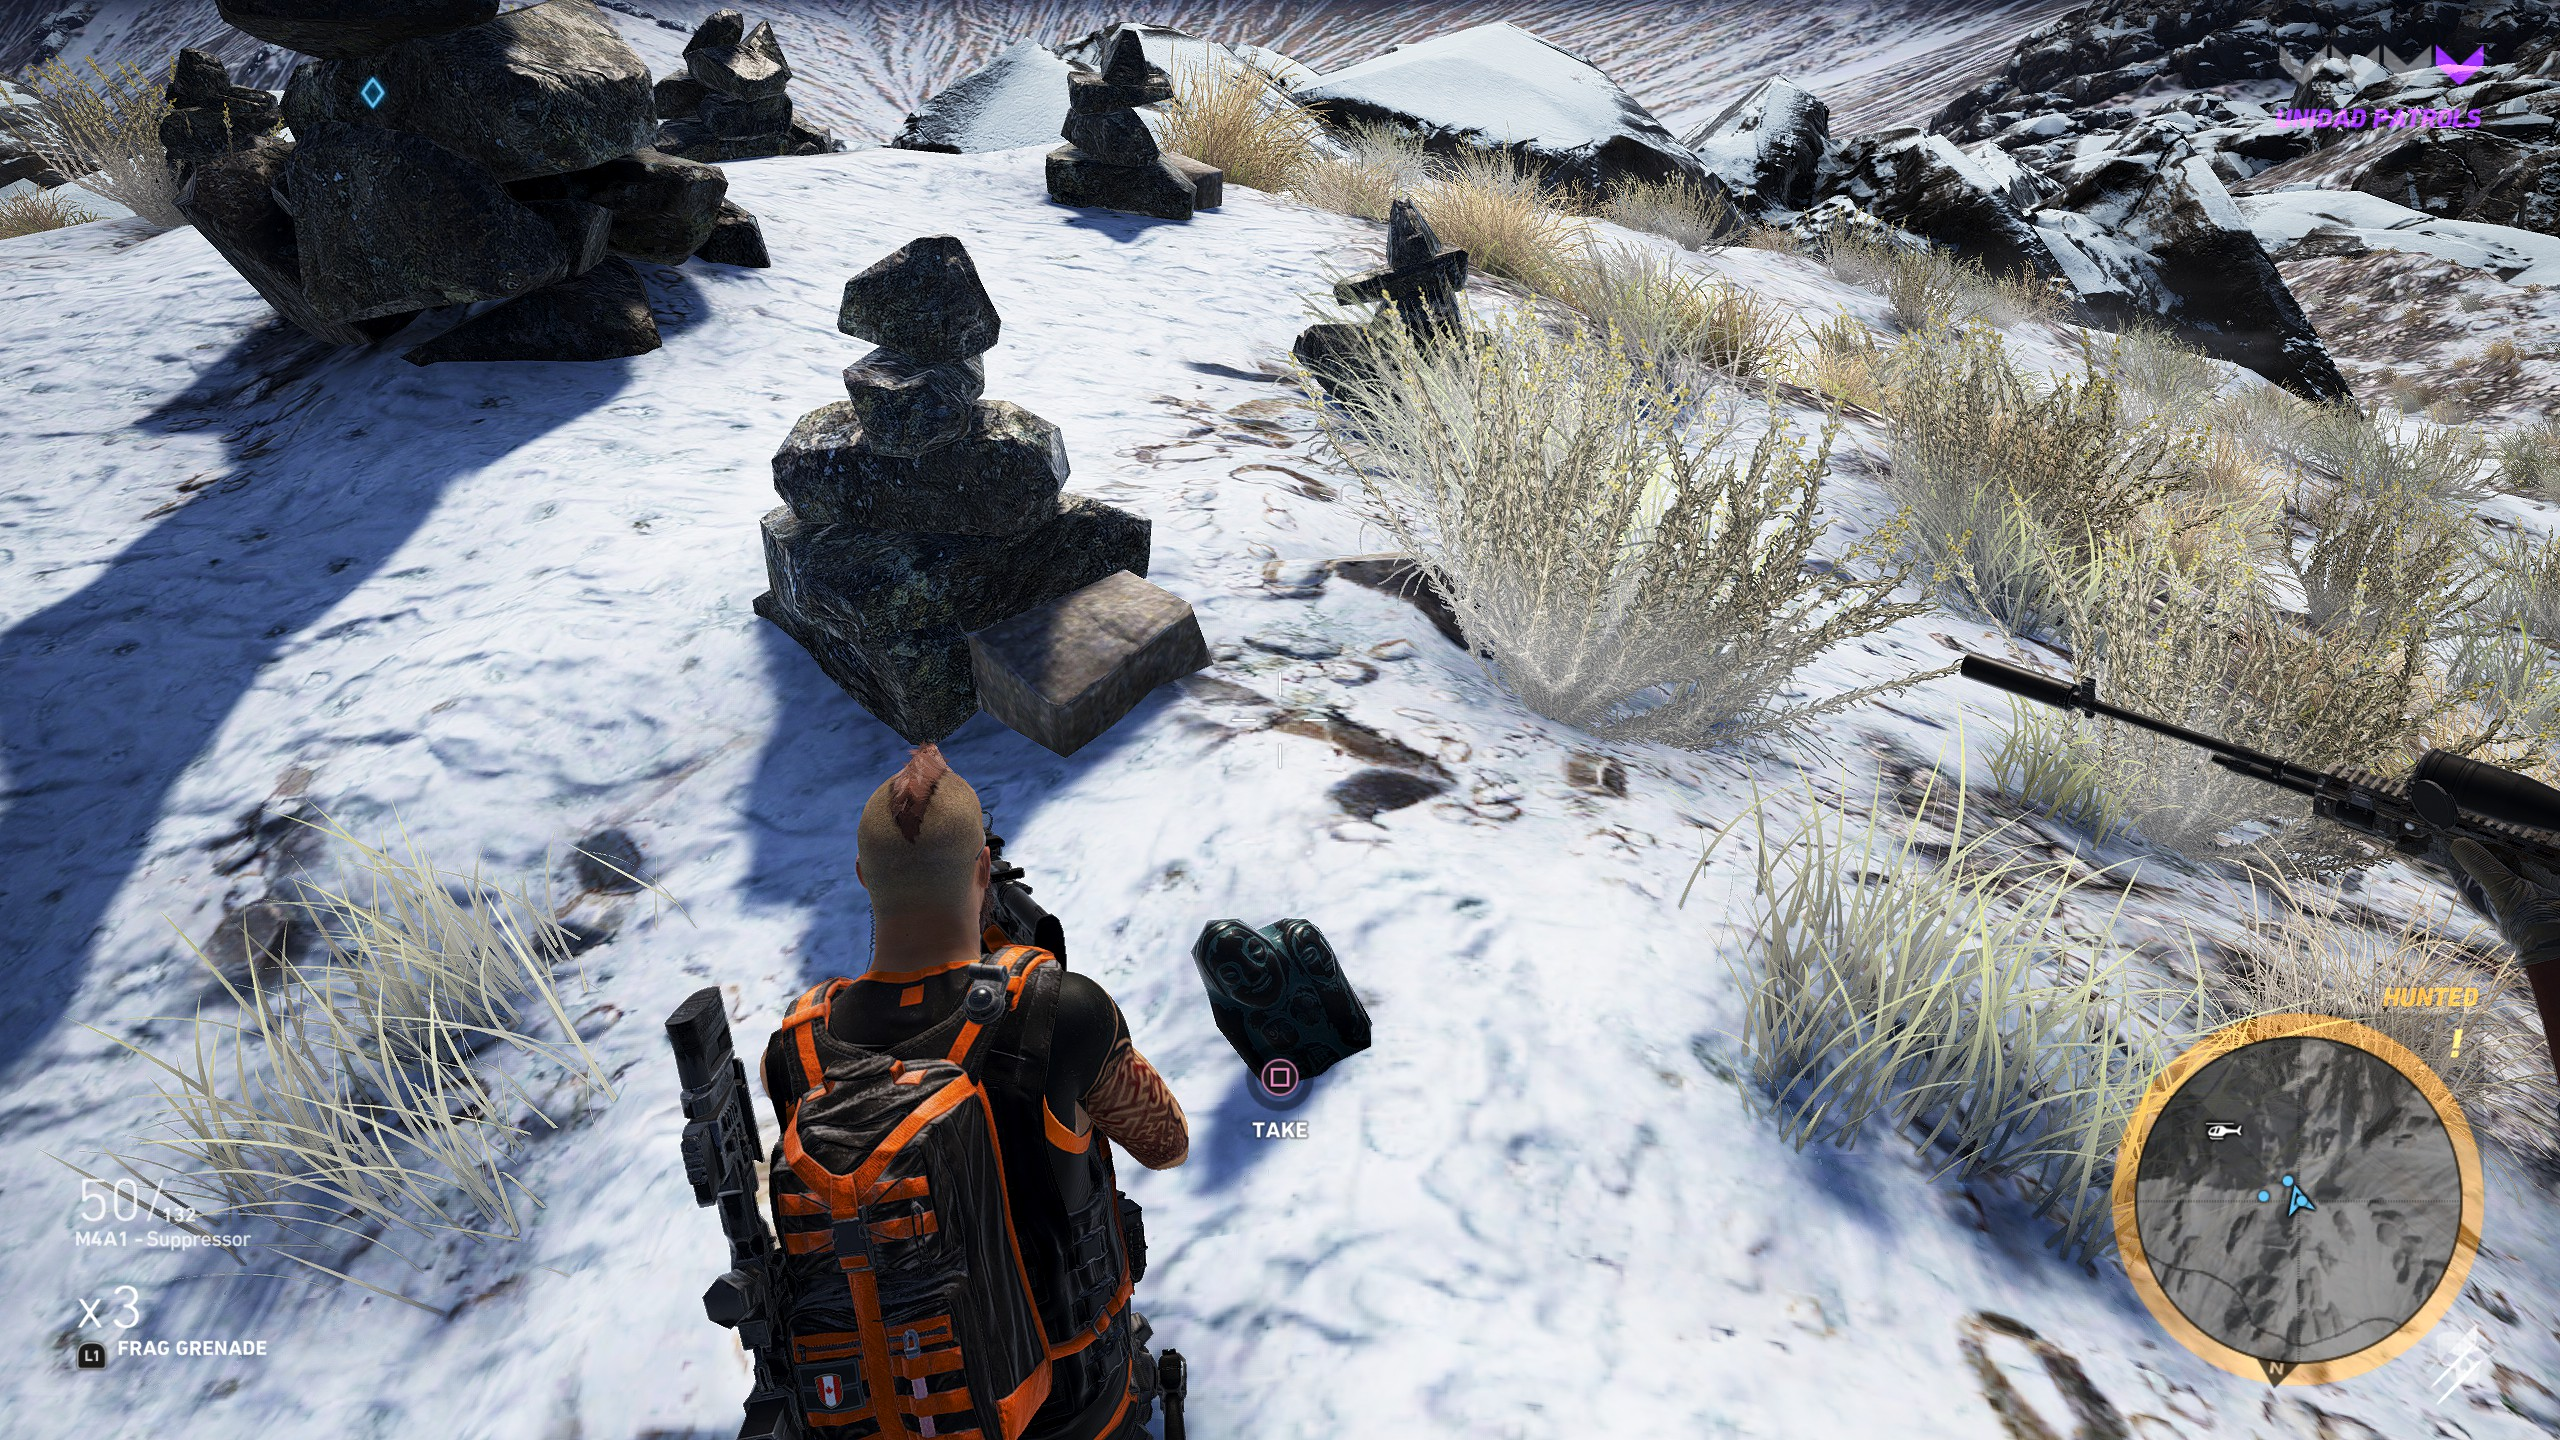 Totem Statue 1 image - Totem Statue locations in Ghost Recon Wildlands